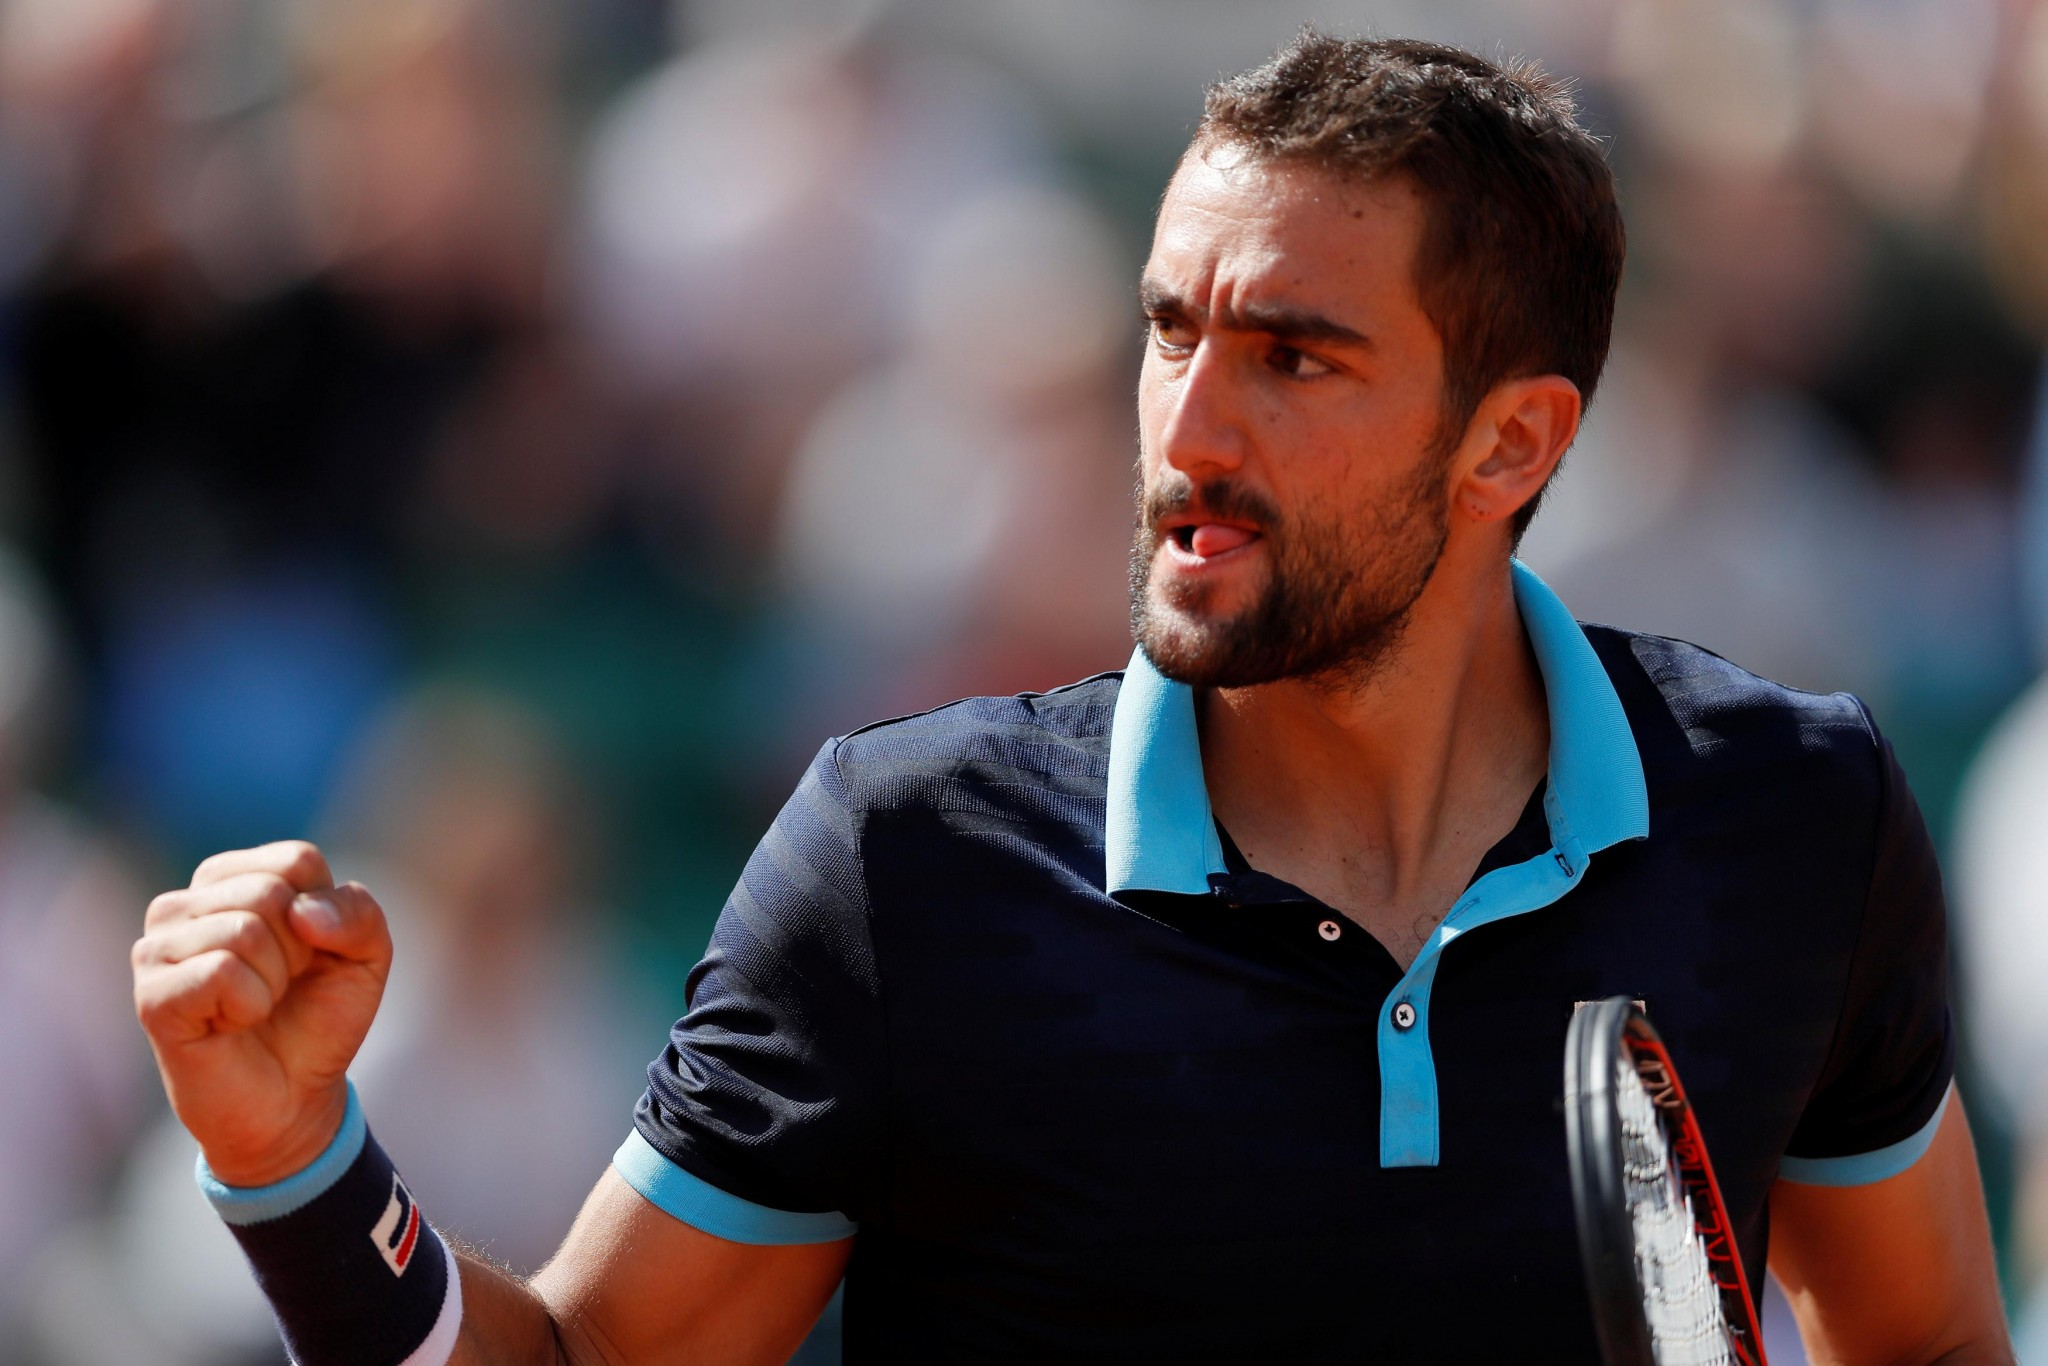 2017 French Open Update - Marin Cilic Looking Deadly images